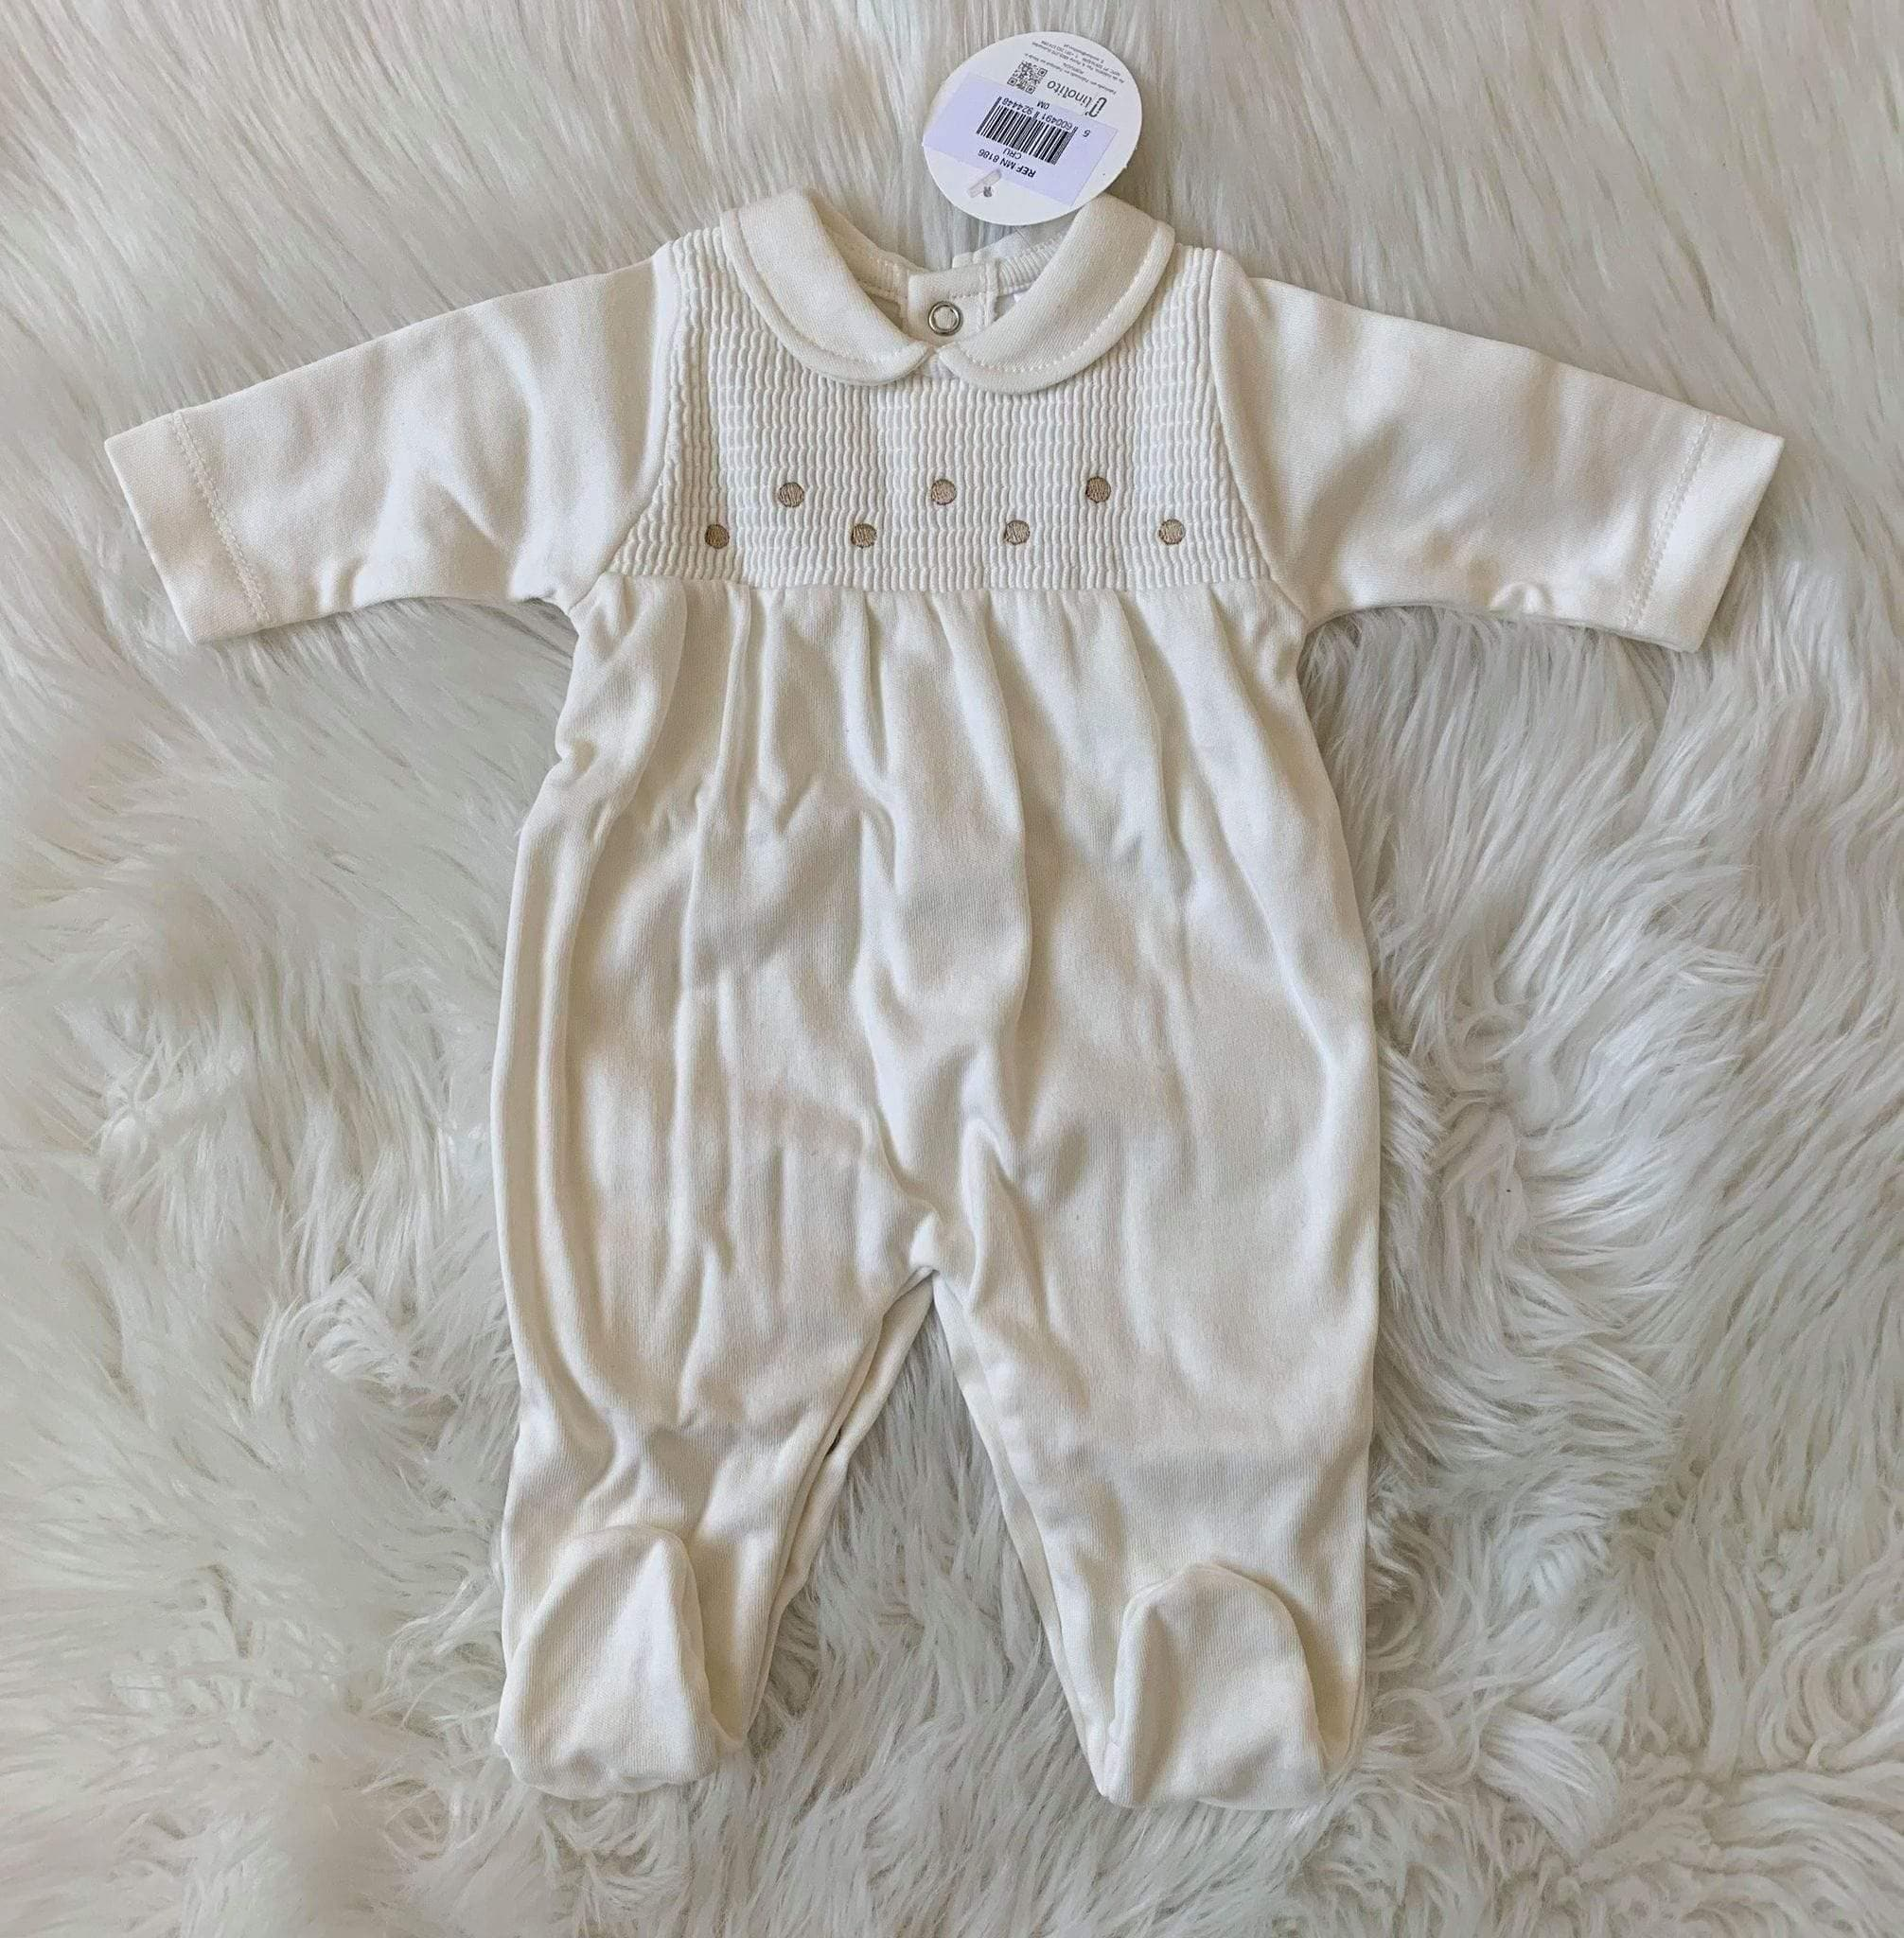 Minhon Babygrows Minhon AW20 - Smocked Cream Romper Suit